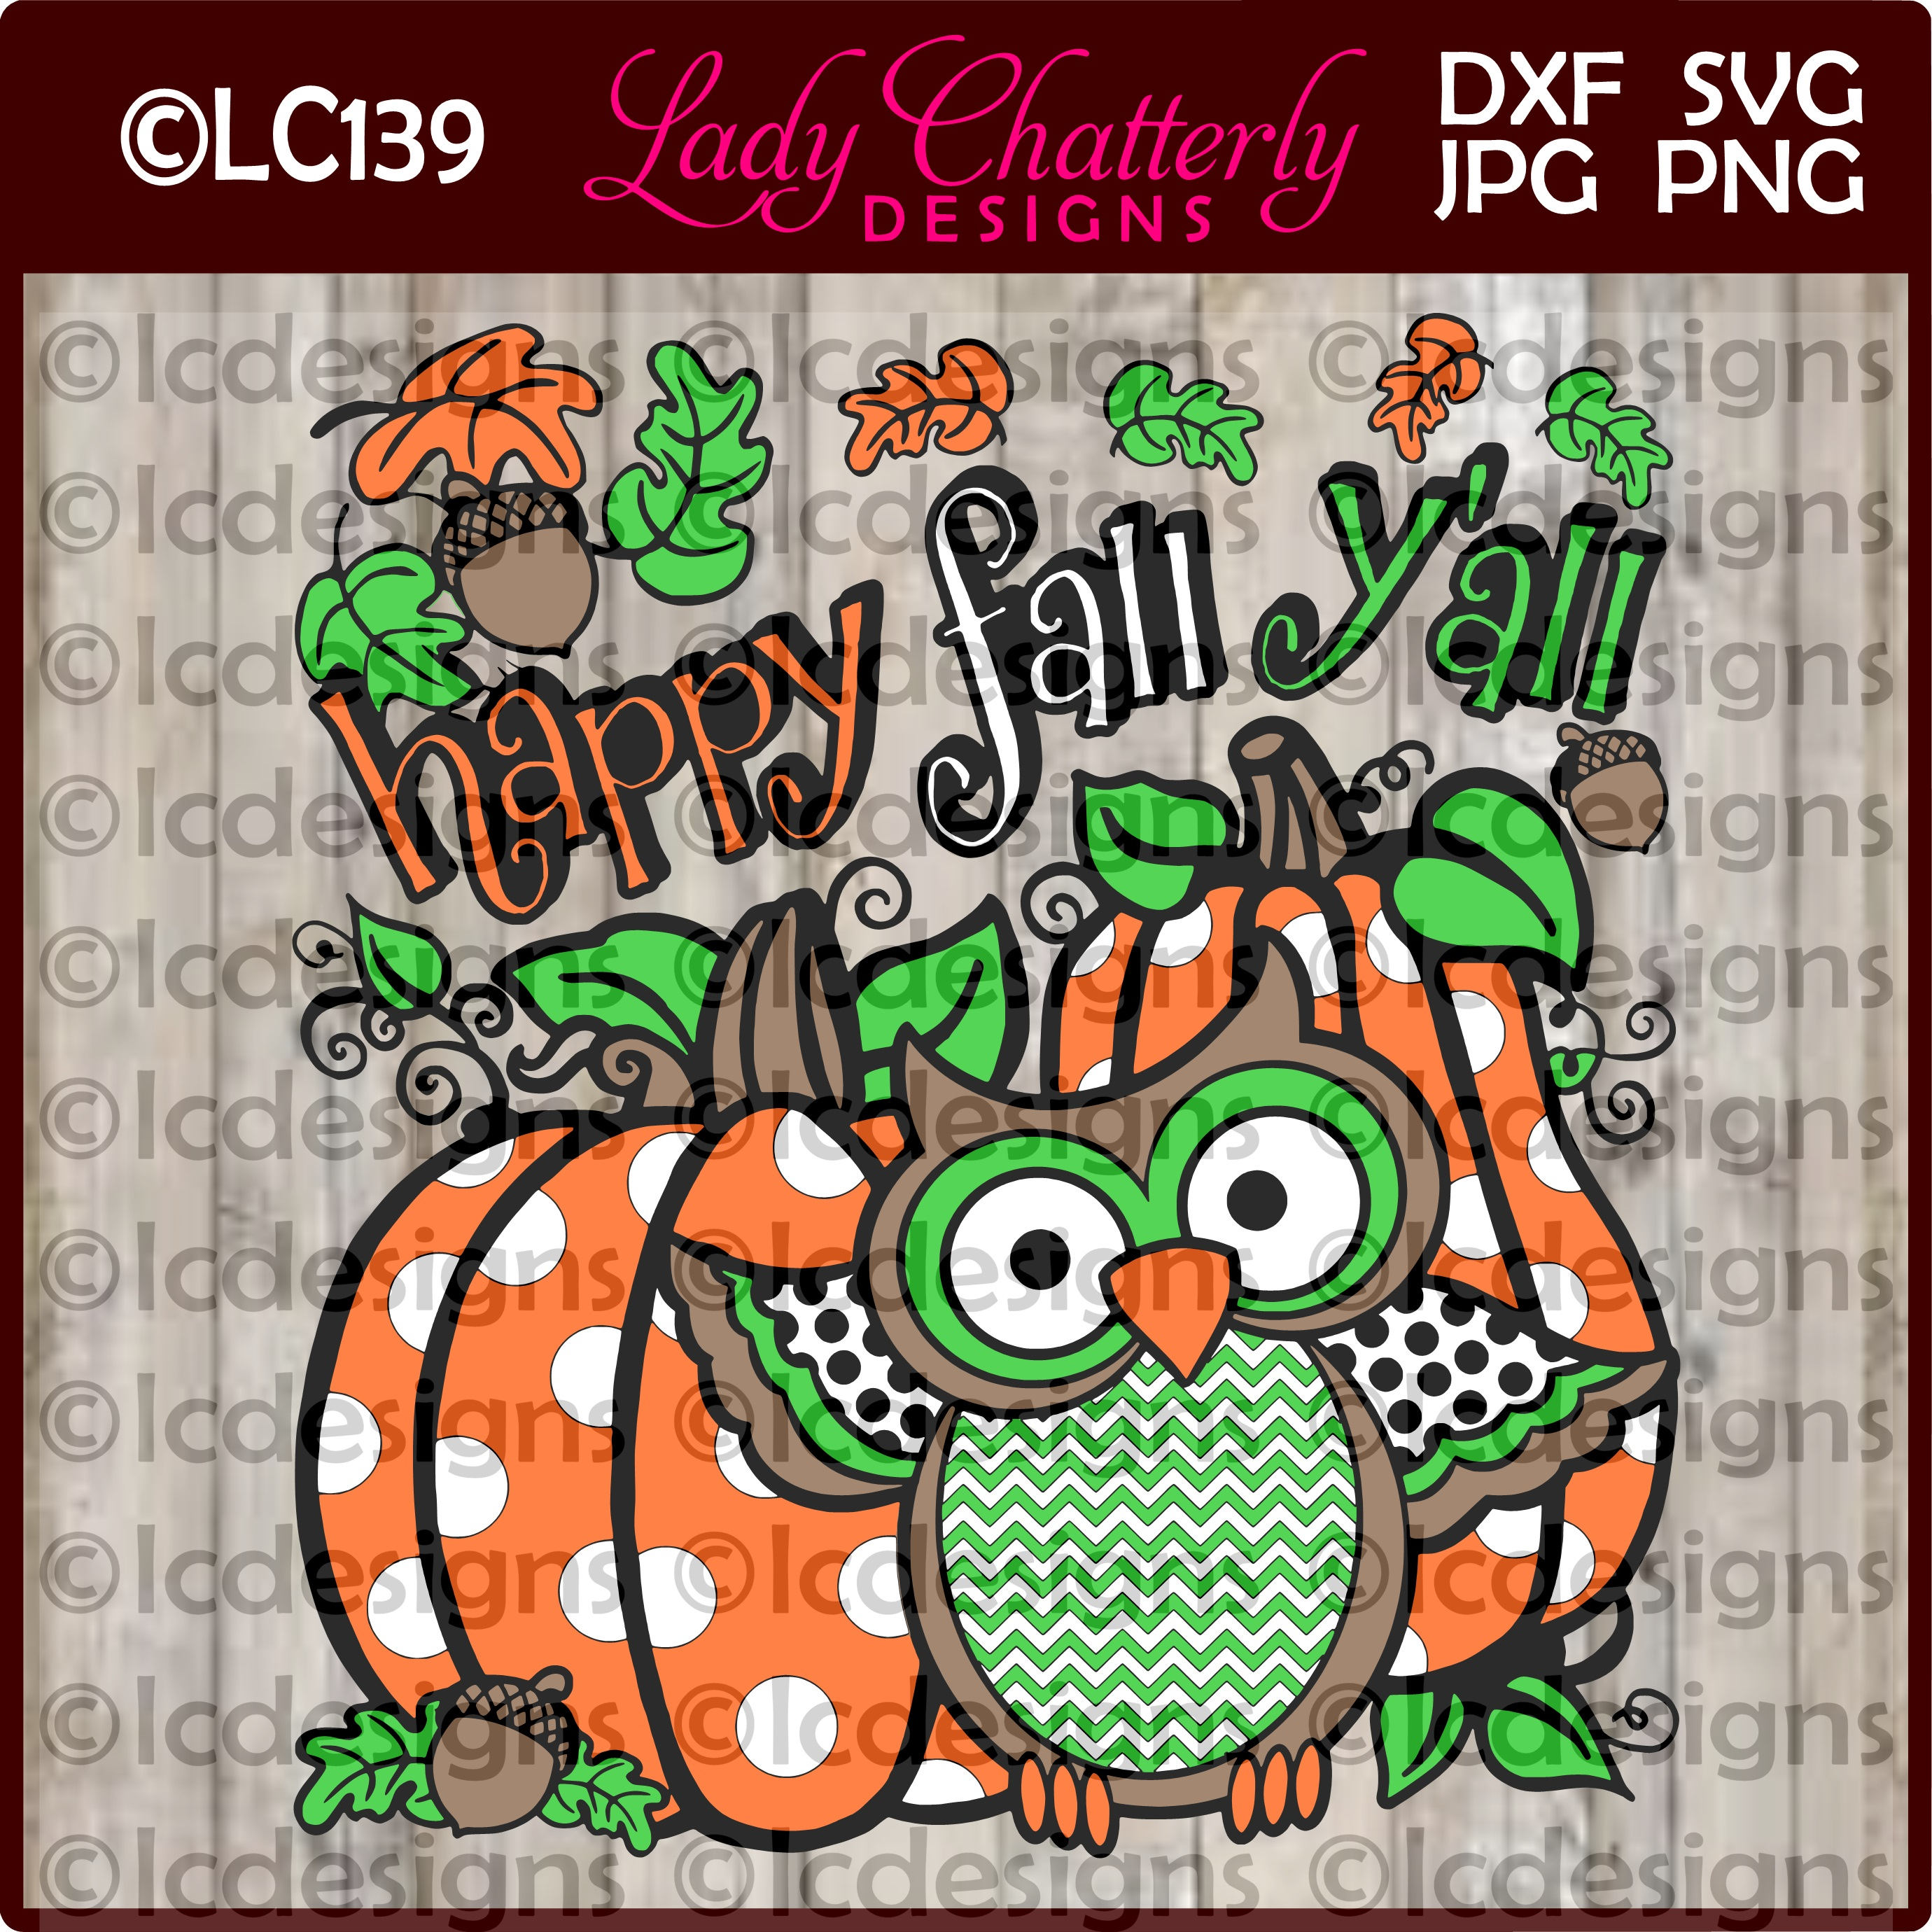 Happy Fall Y'all Cute Owl Design Graphic Crafts By Lady Chatterly Designs